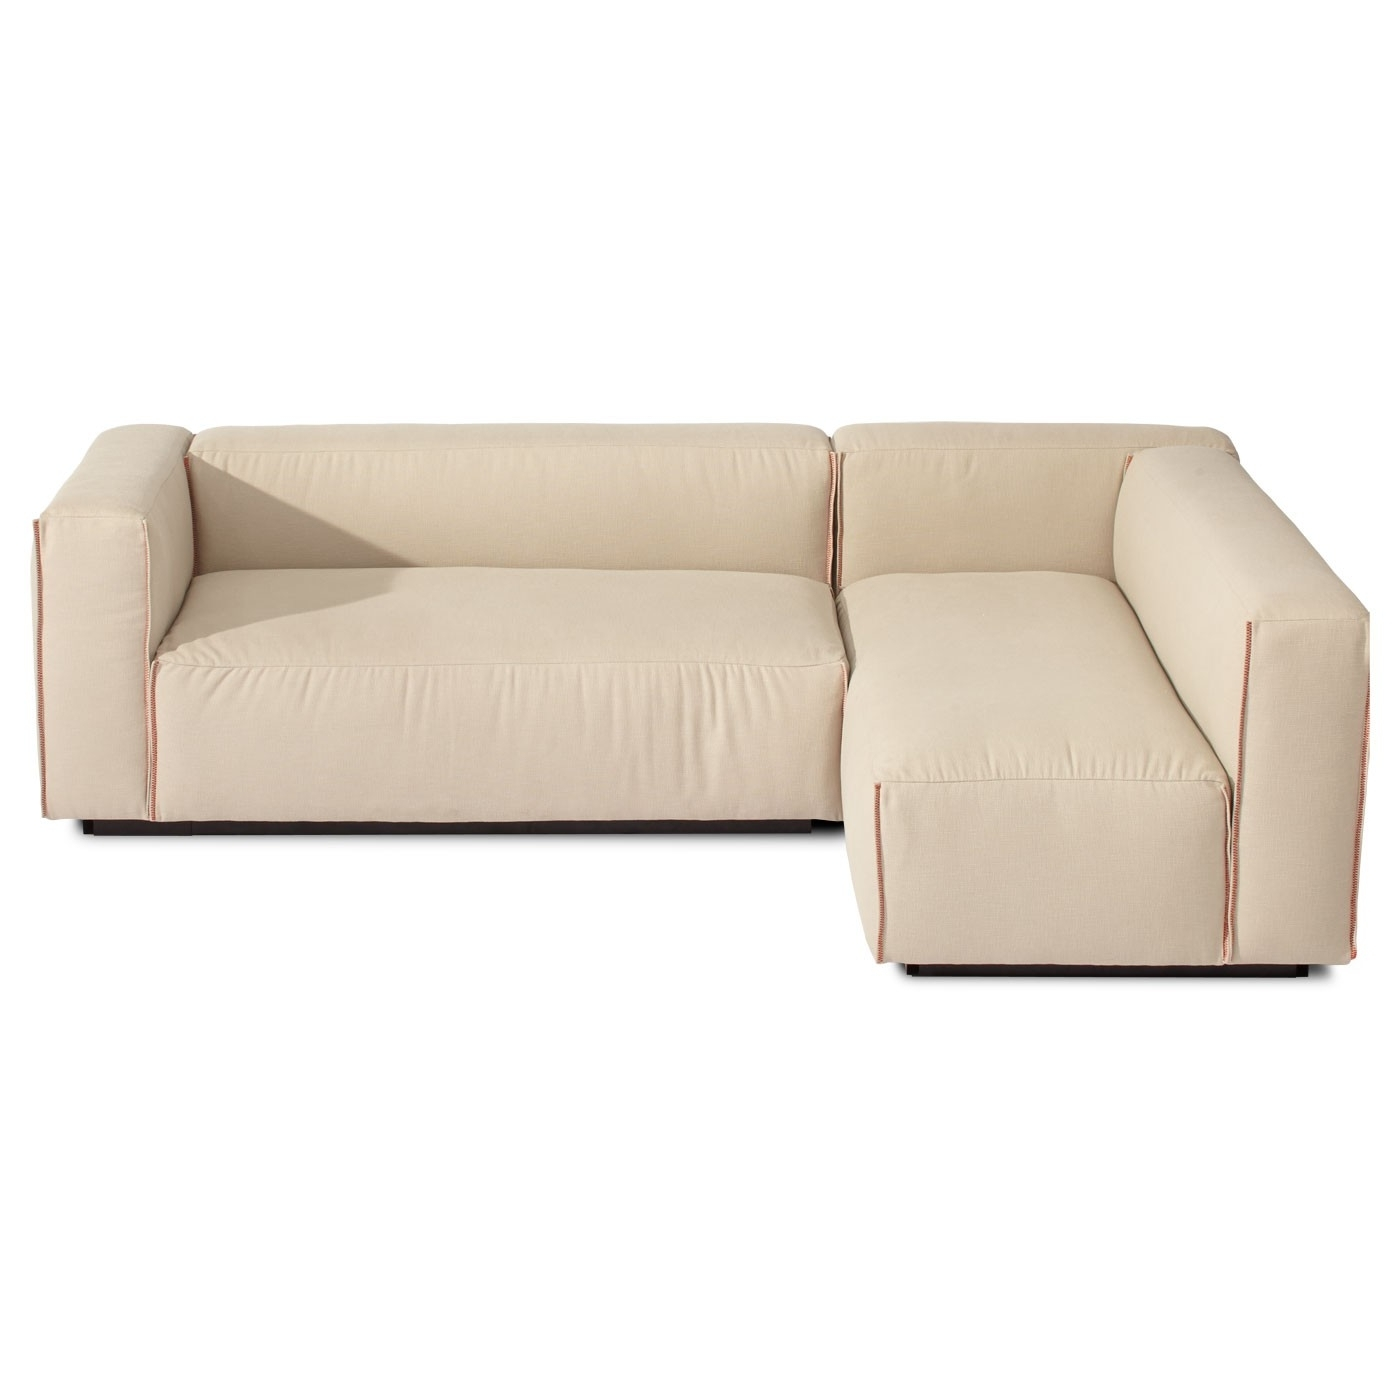 Well Liked Sectional Sofa Design: Elegant Small Modern Sectional Sofa Inside Armless Sectional Sofas (View 14 of 15)